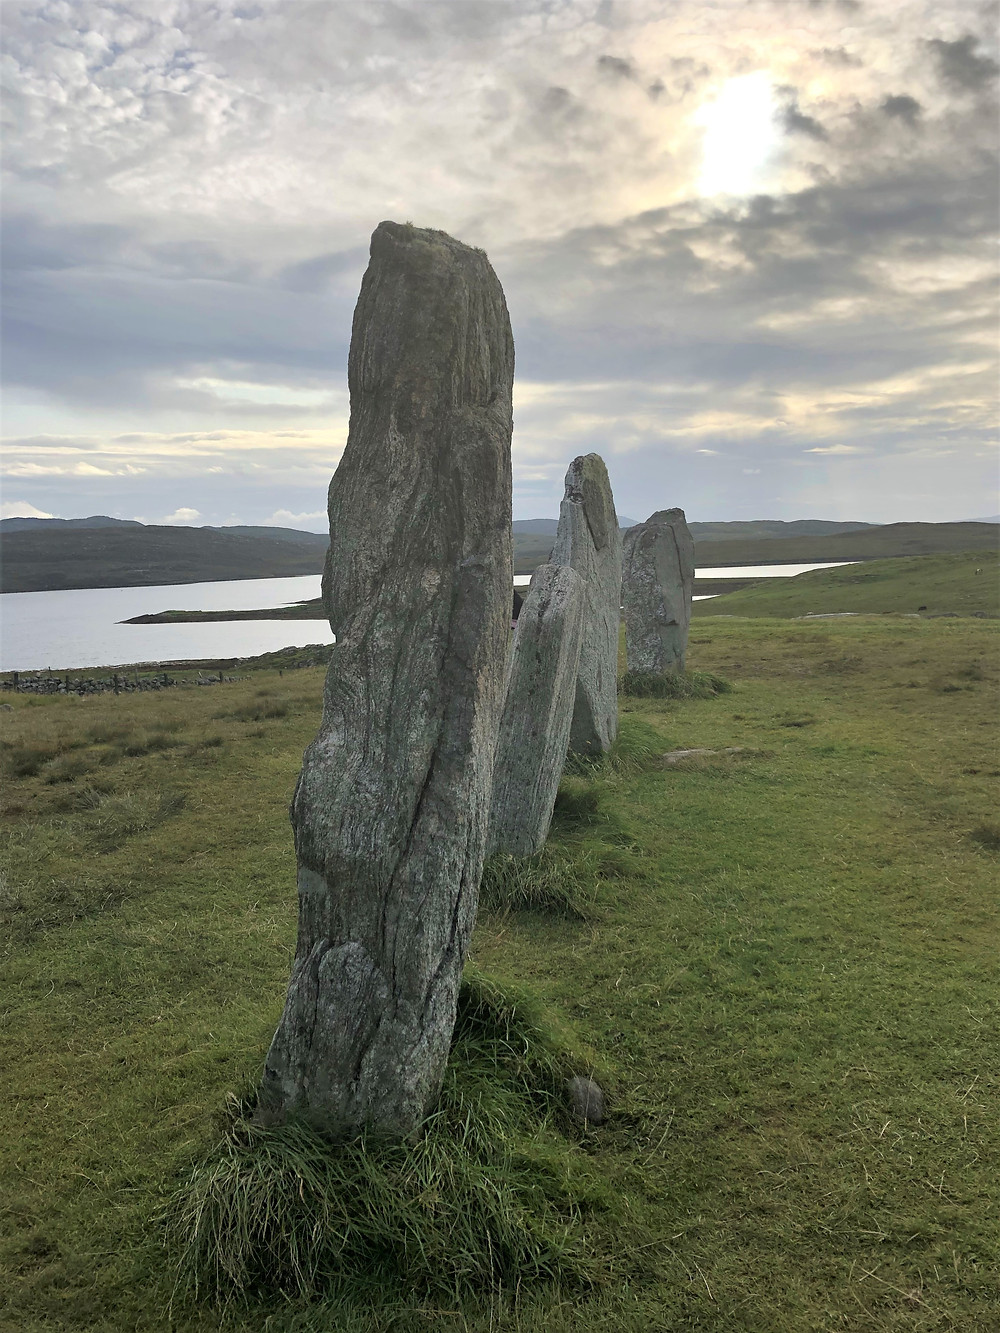 Sun setting over the Standing Stones of Callanish on Lewis and Harris in the Outer Hebrides